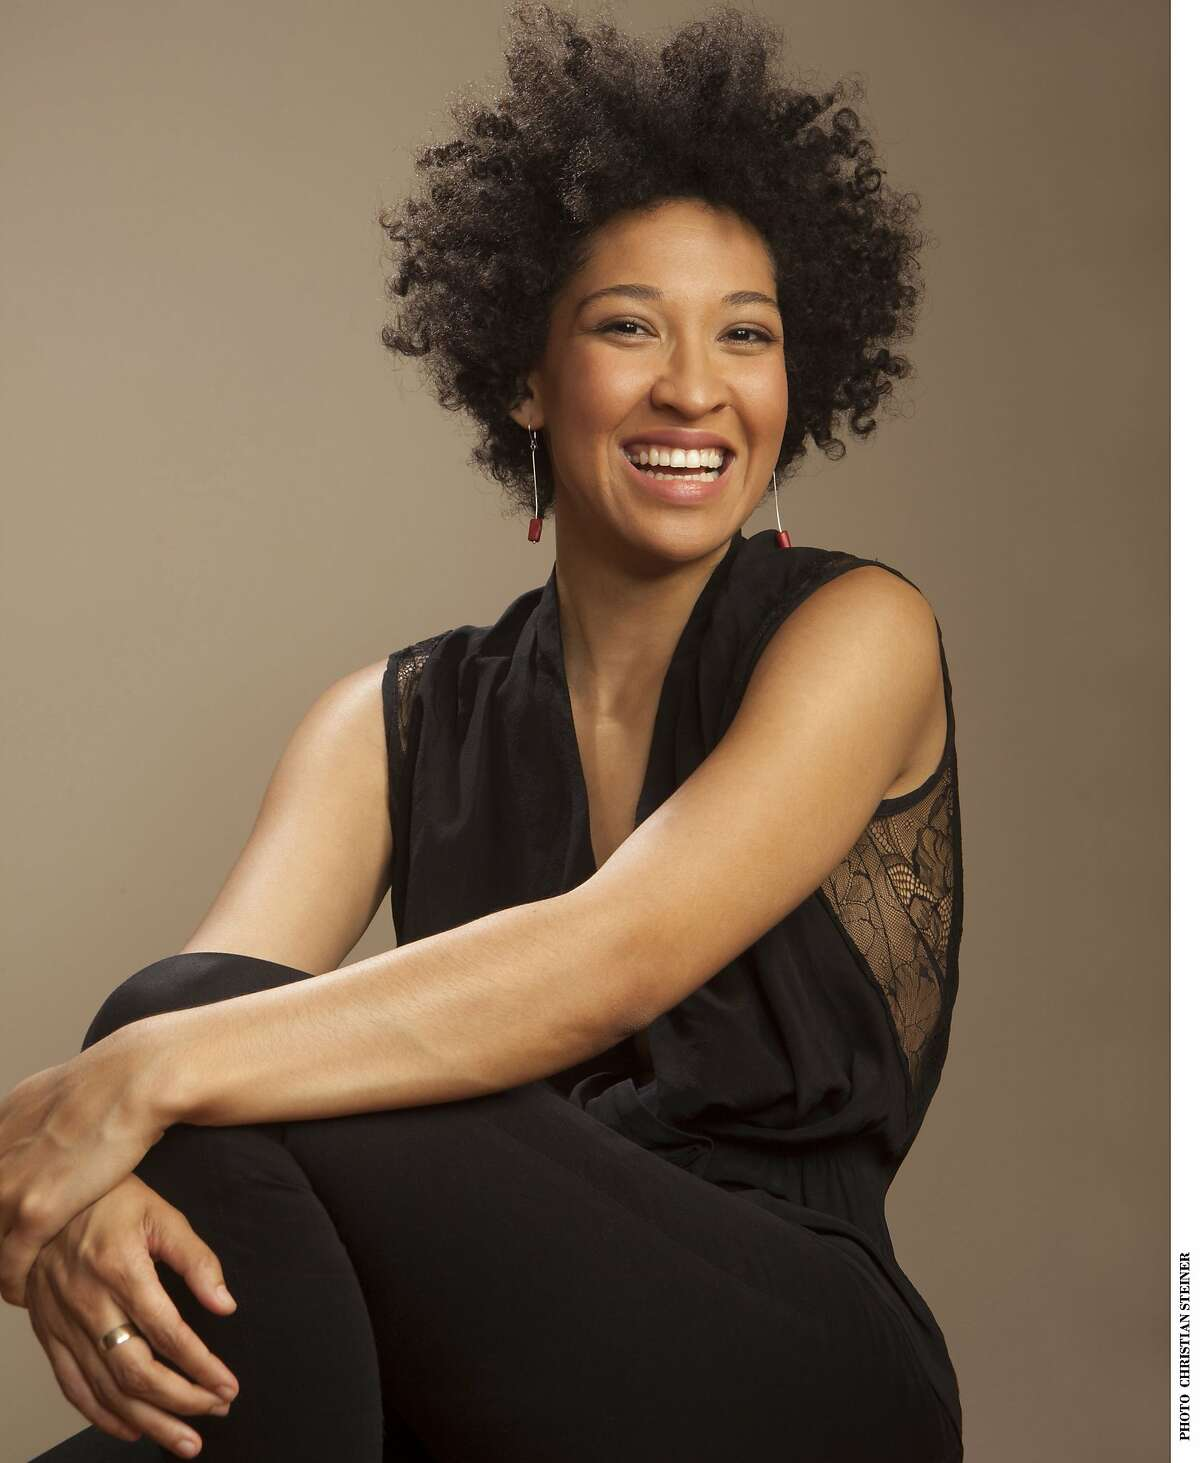 Soprano Julia Bullock, who will be performing a concert with pianist John Arida, for Cal Performances.